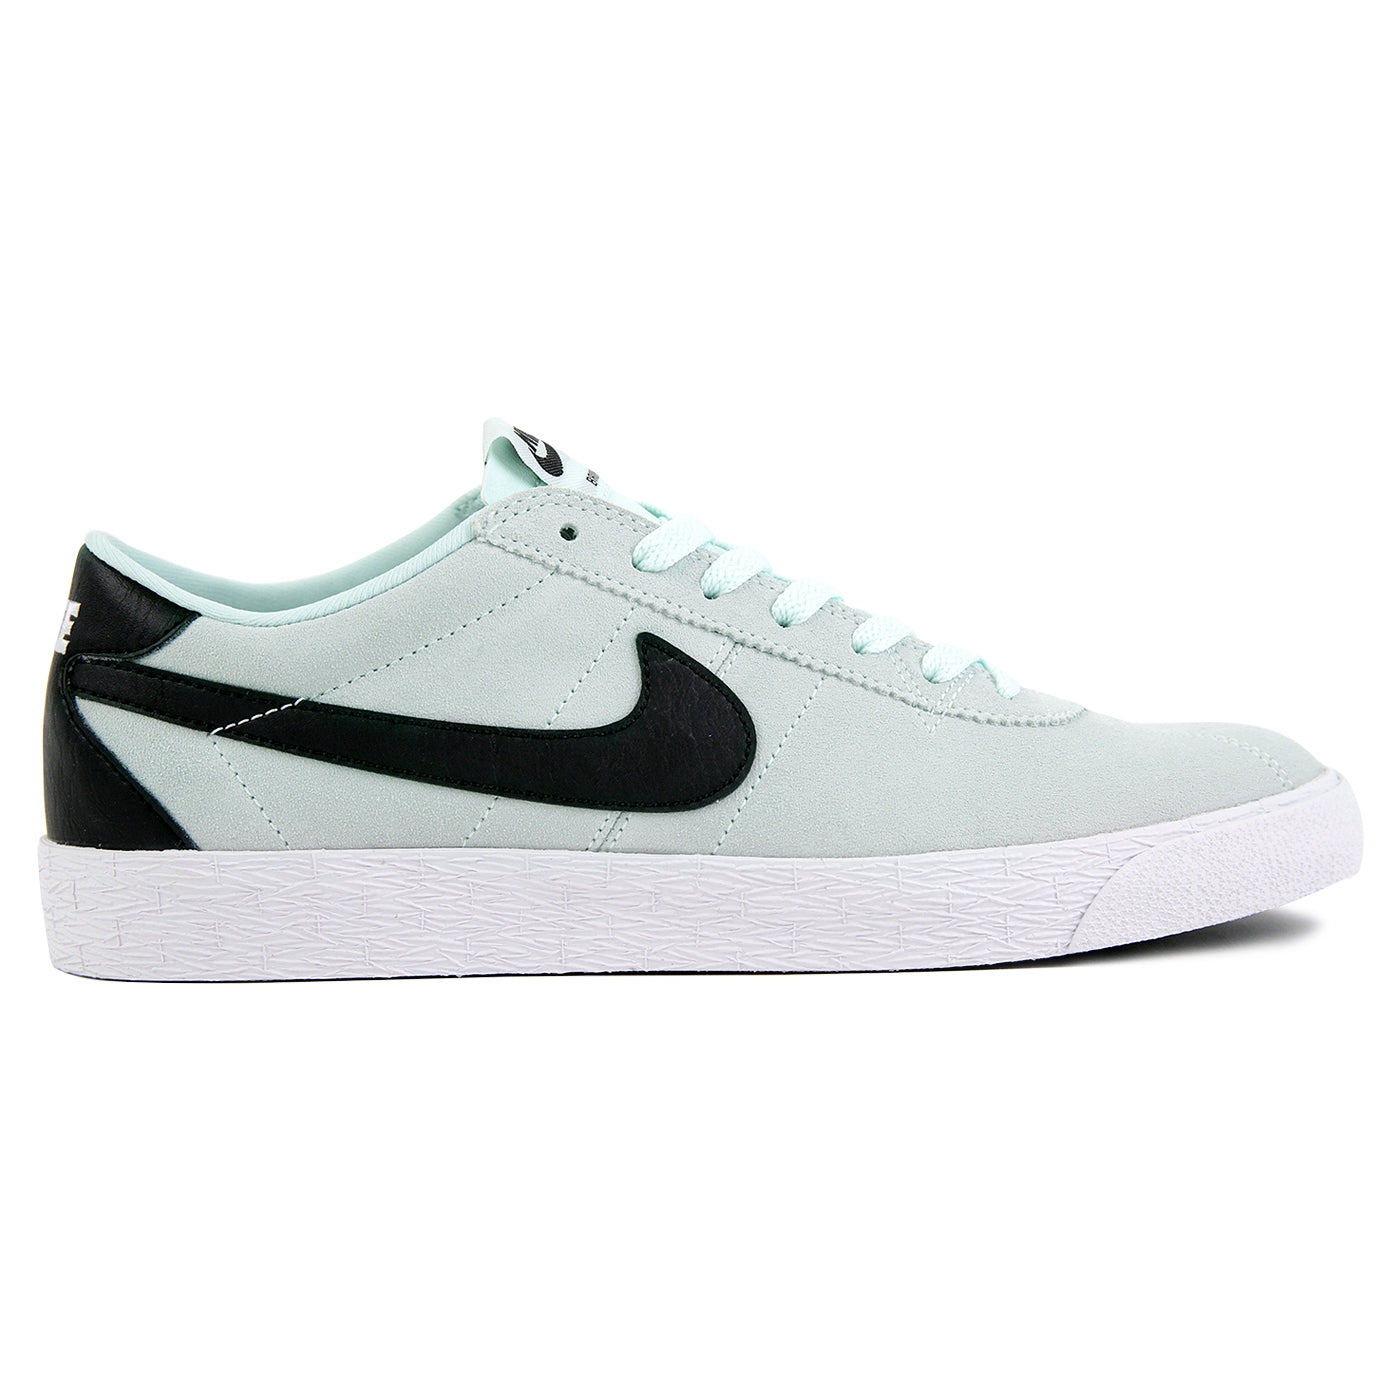 timeless design huge inventory great look Bruin Premium SE Shoes in Barely Green / Black - White by Nike SB ...